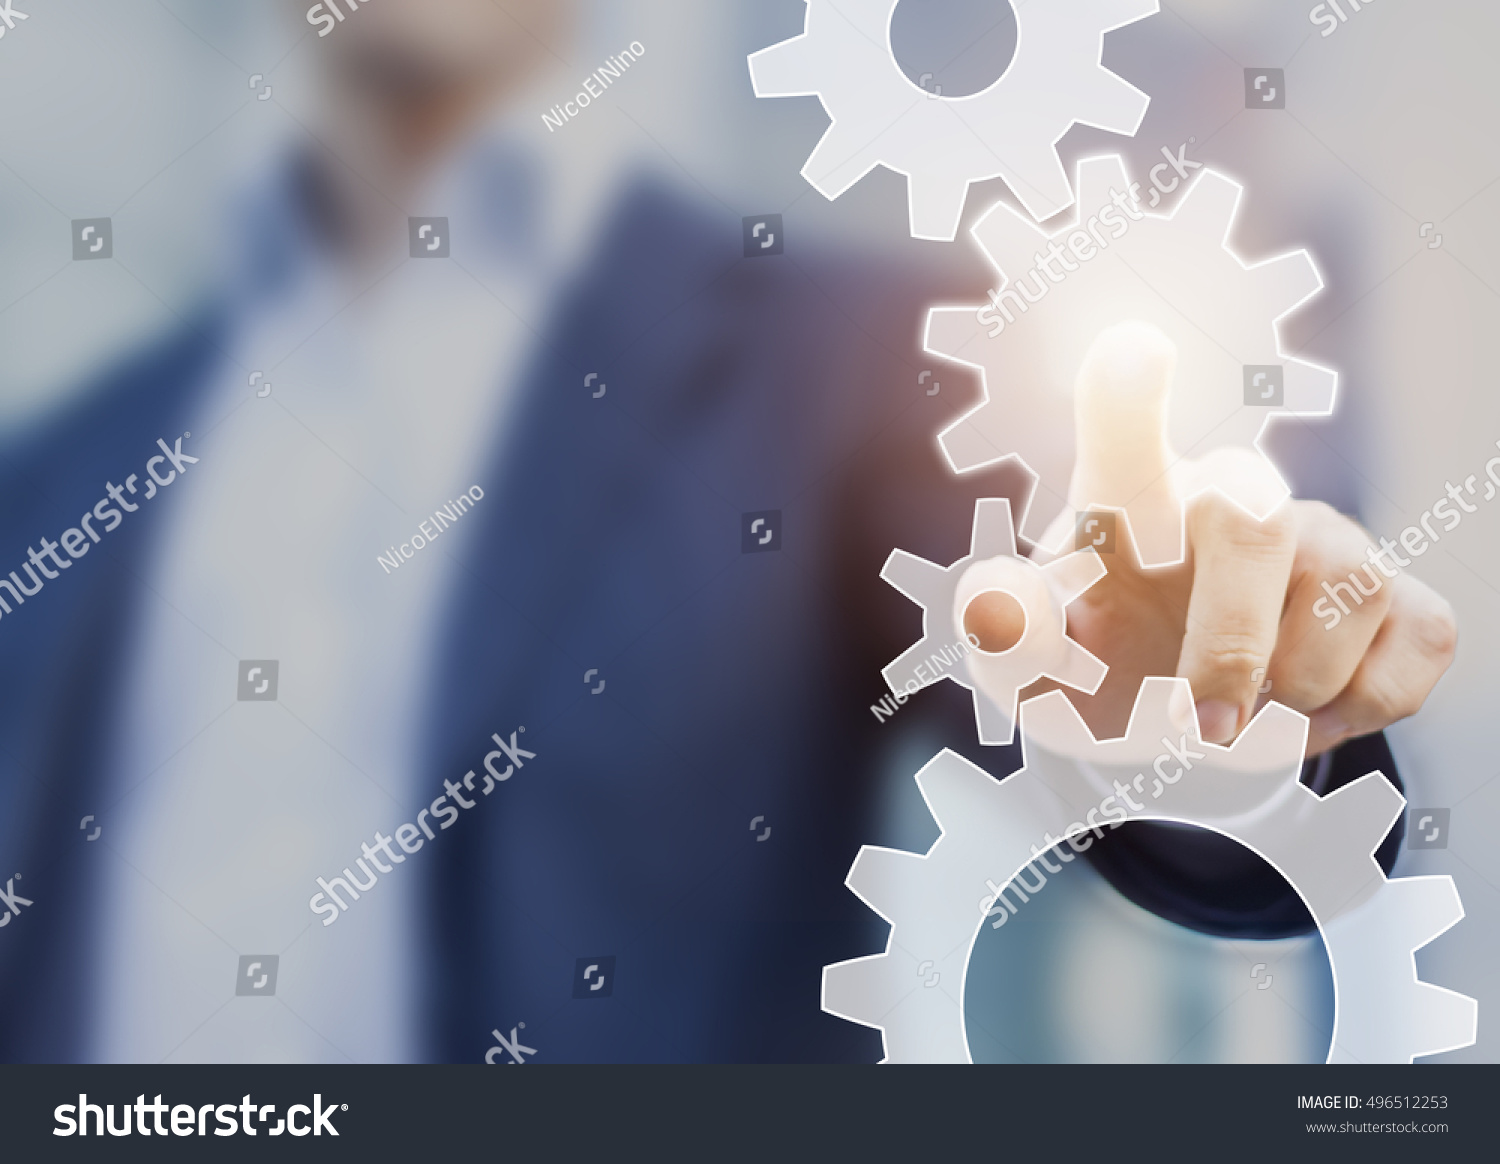 Business robotic process automation and workflow improvement concept represented by a businessman touching a cogwheel connected with other gears #496512253